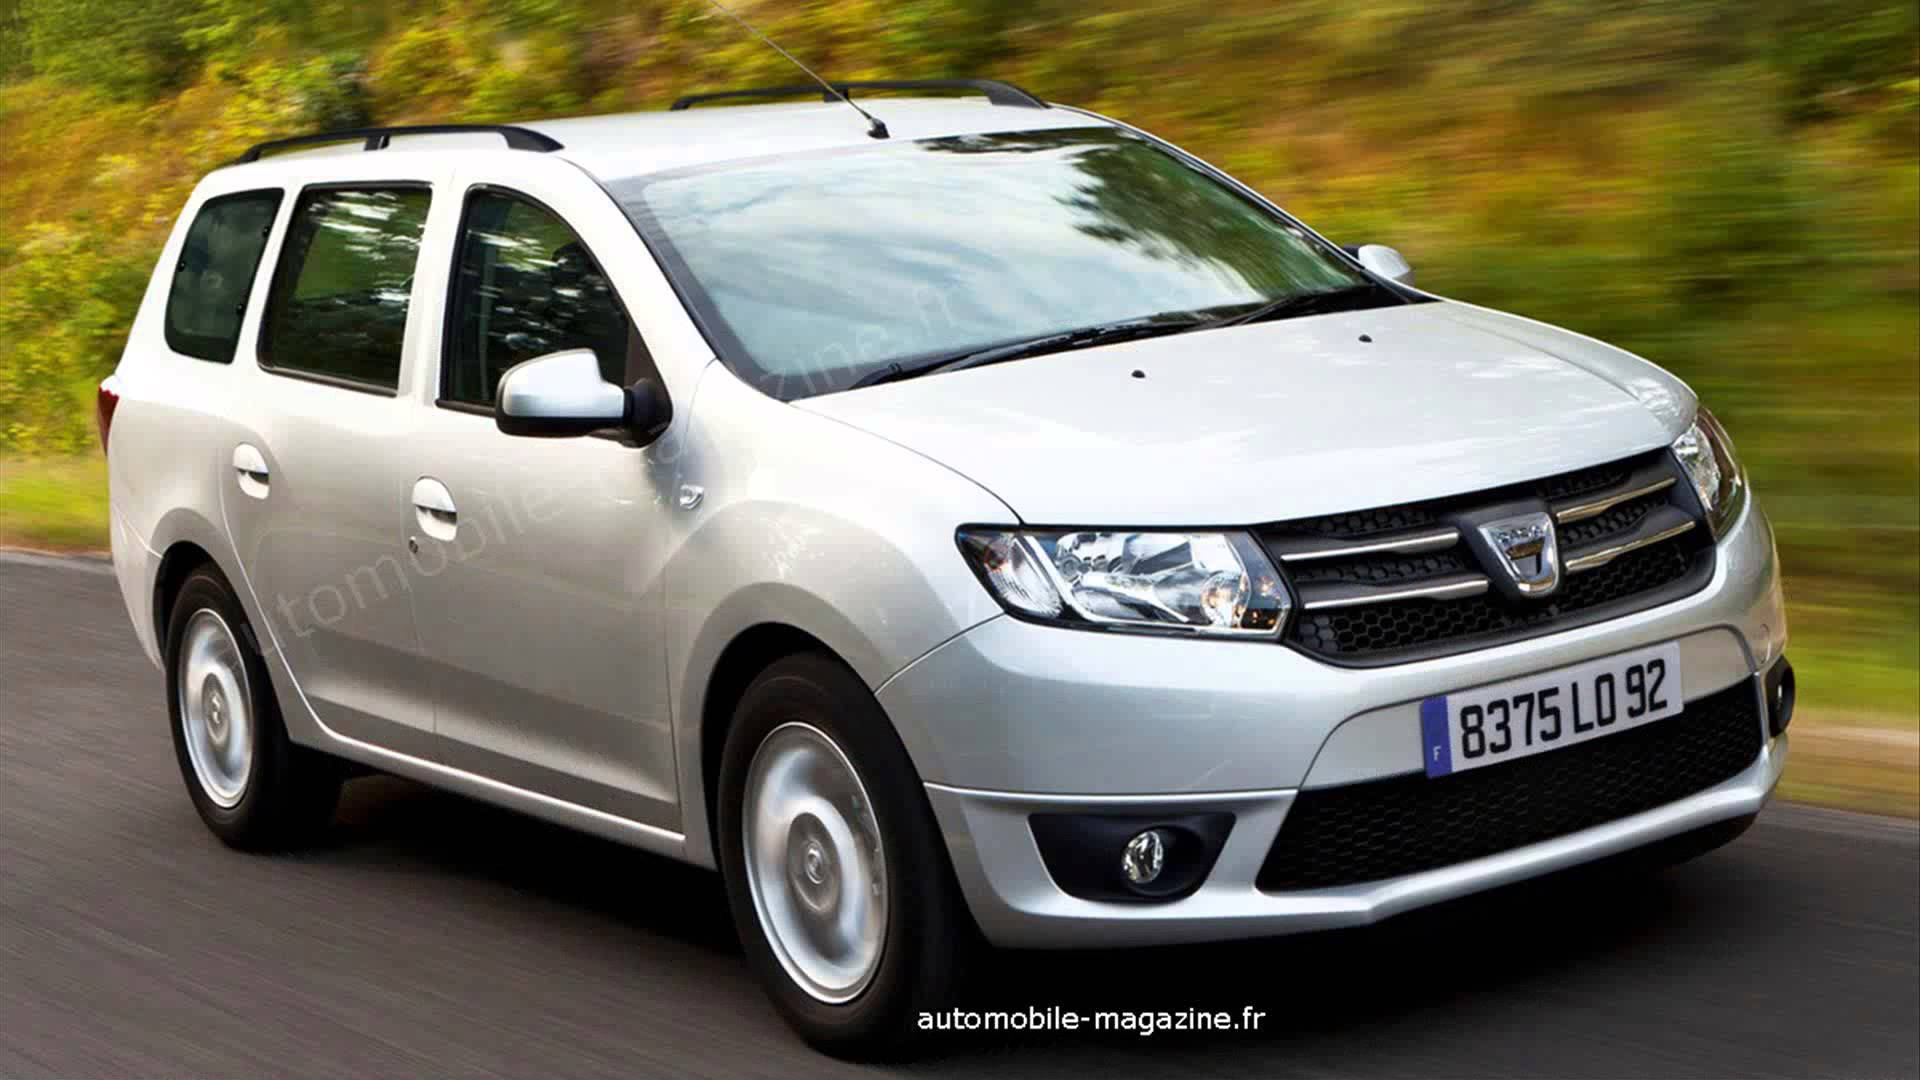 2016 renault logan mcv pictures information and specs auto. Black Bedroom Furniture Sets. Home Design Ideas